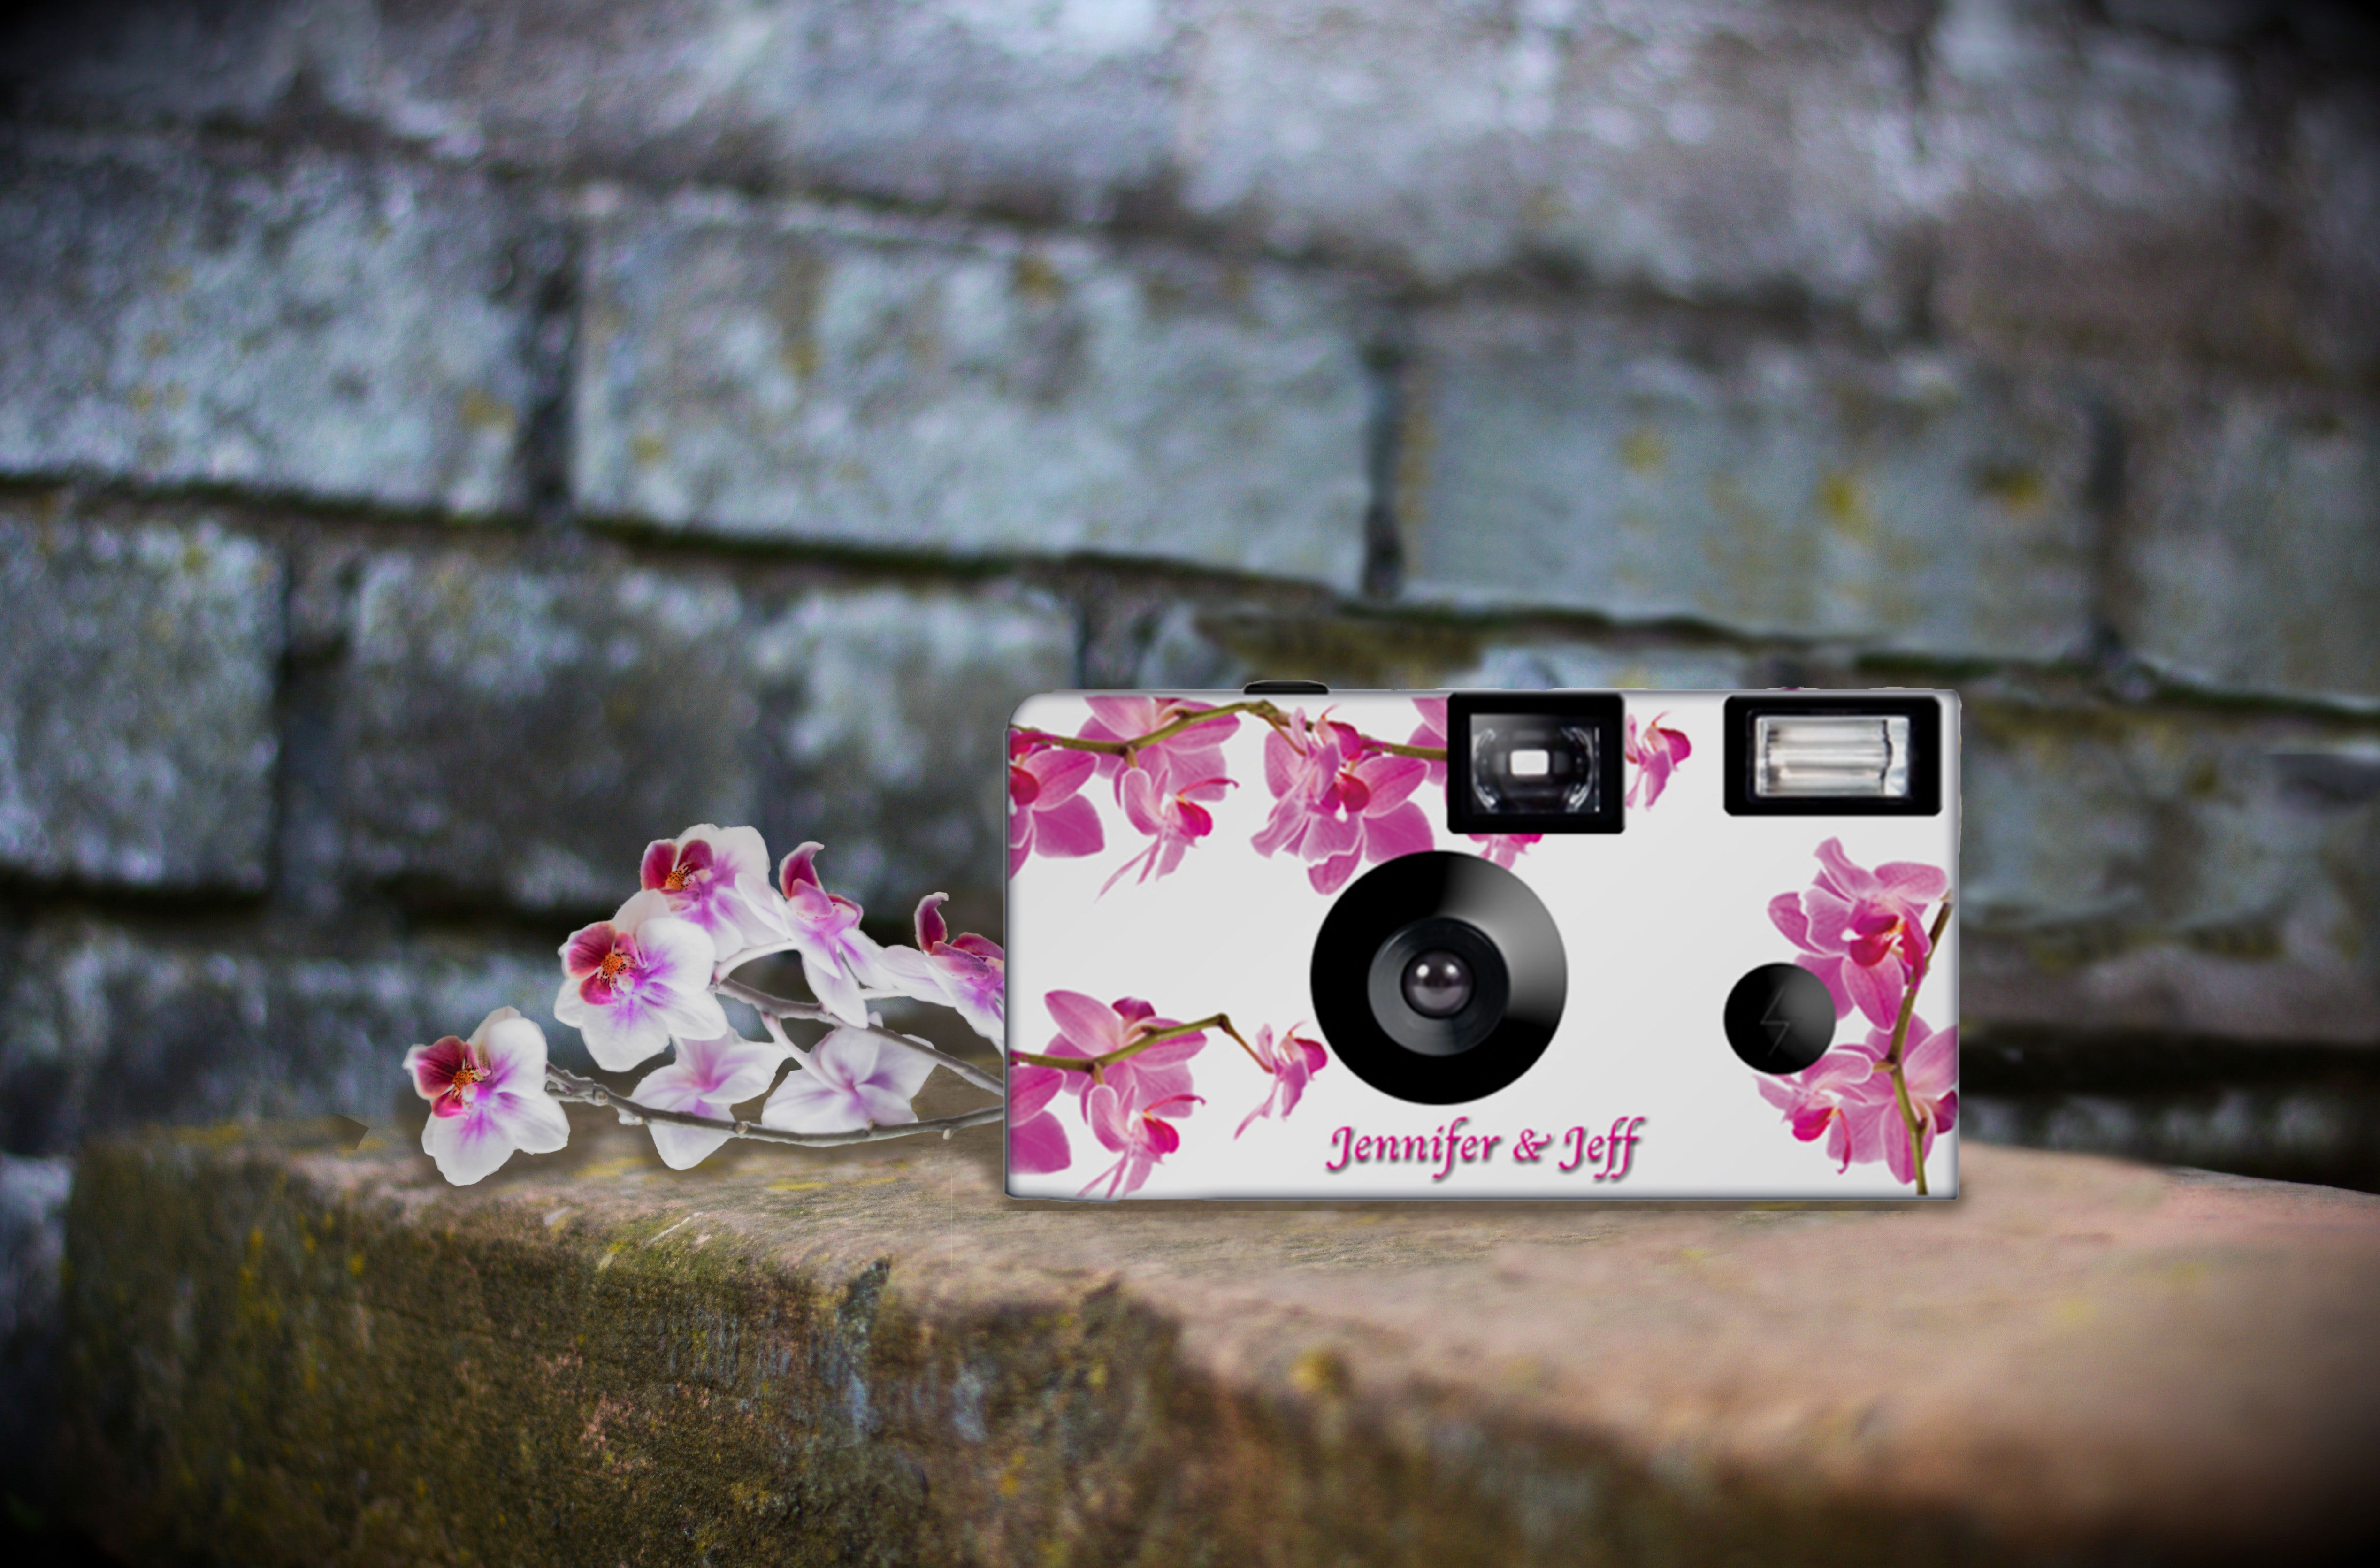 10 Cameras Spring Orchid Disposable Cameras Fuji Color Film Etsy Wedding Camera Color Film Dslr Photography Tips